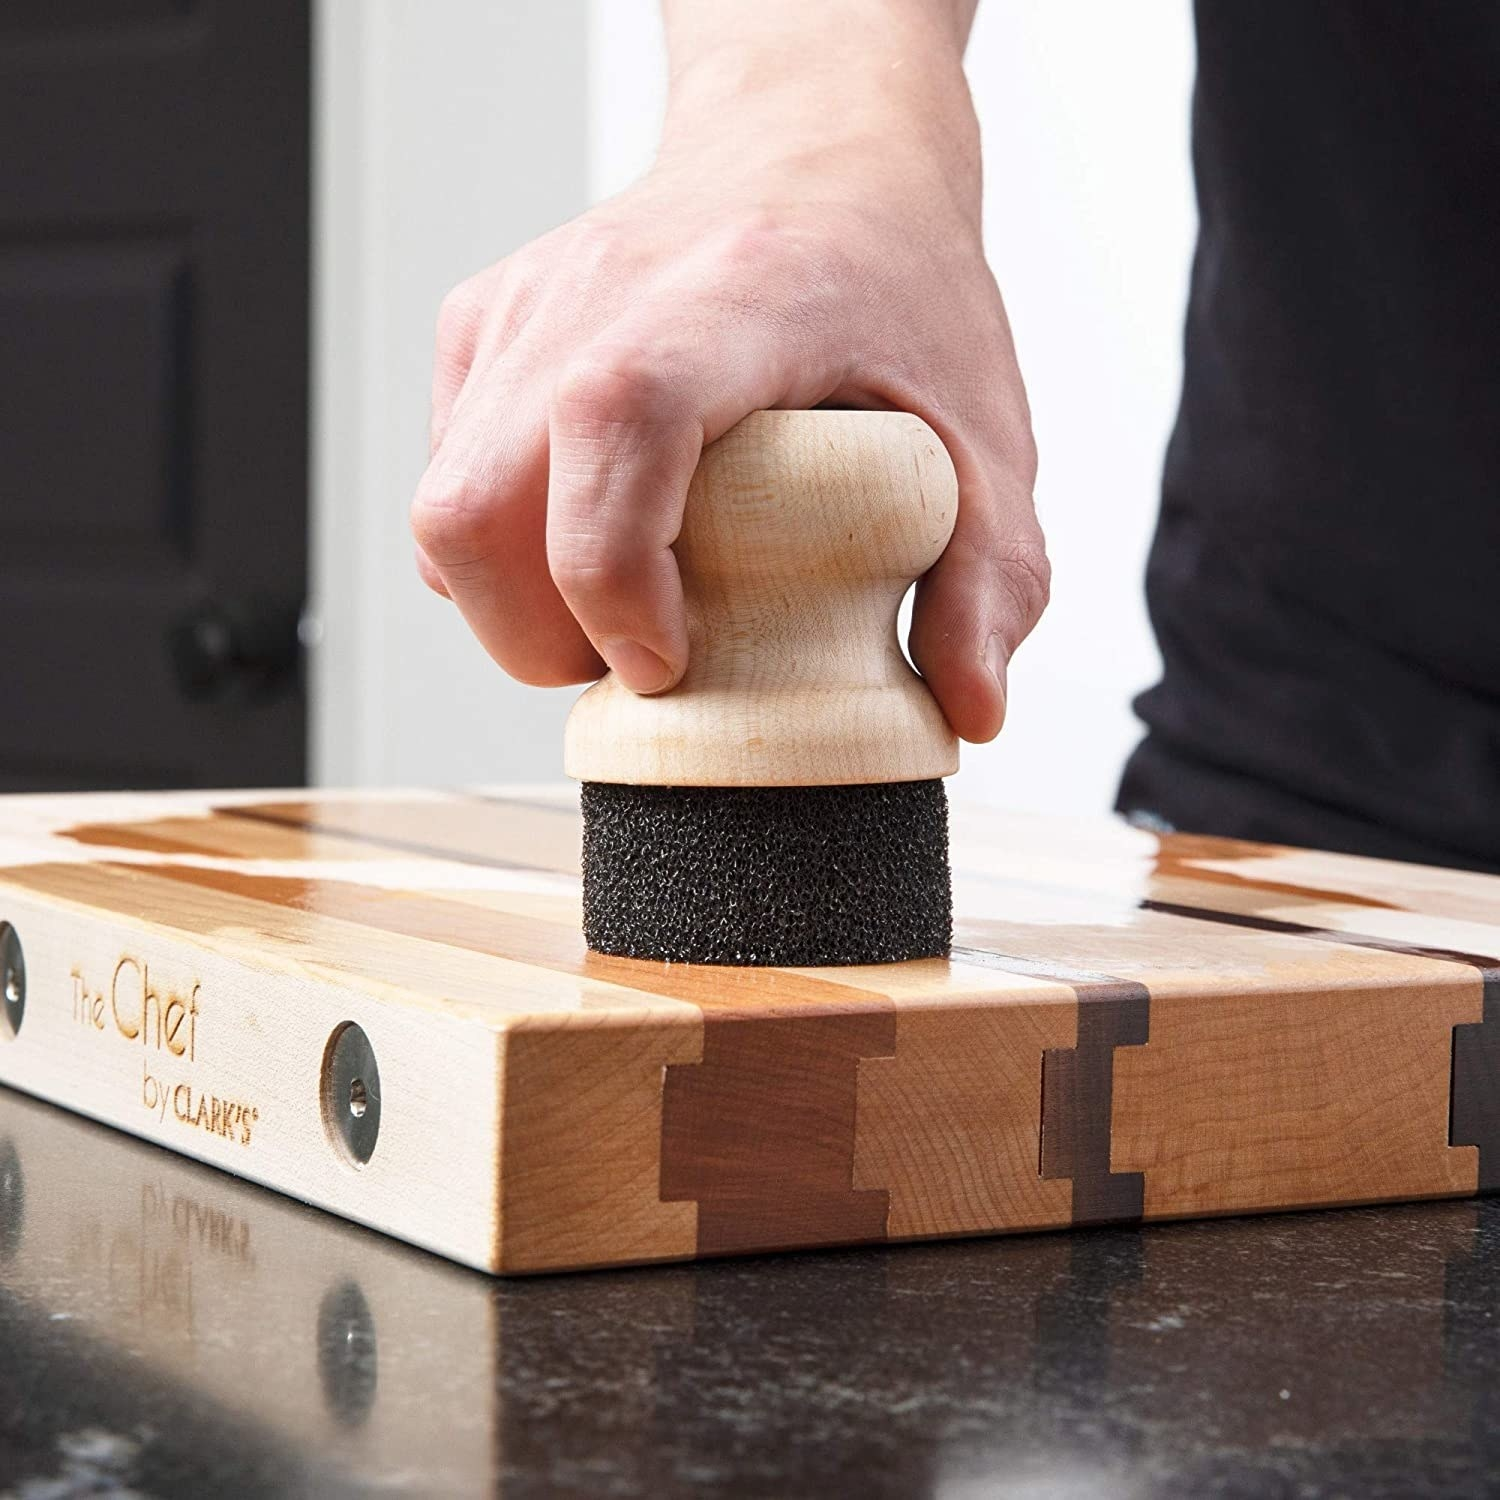 A person using the applicator to clean a cutting board